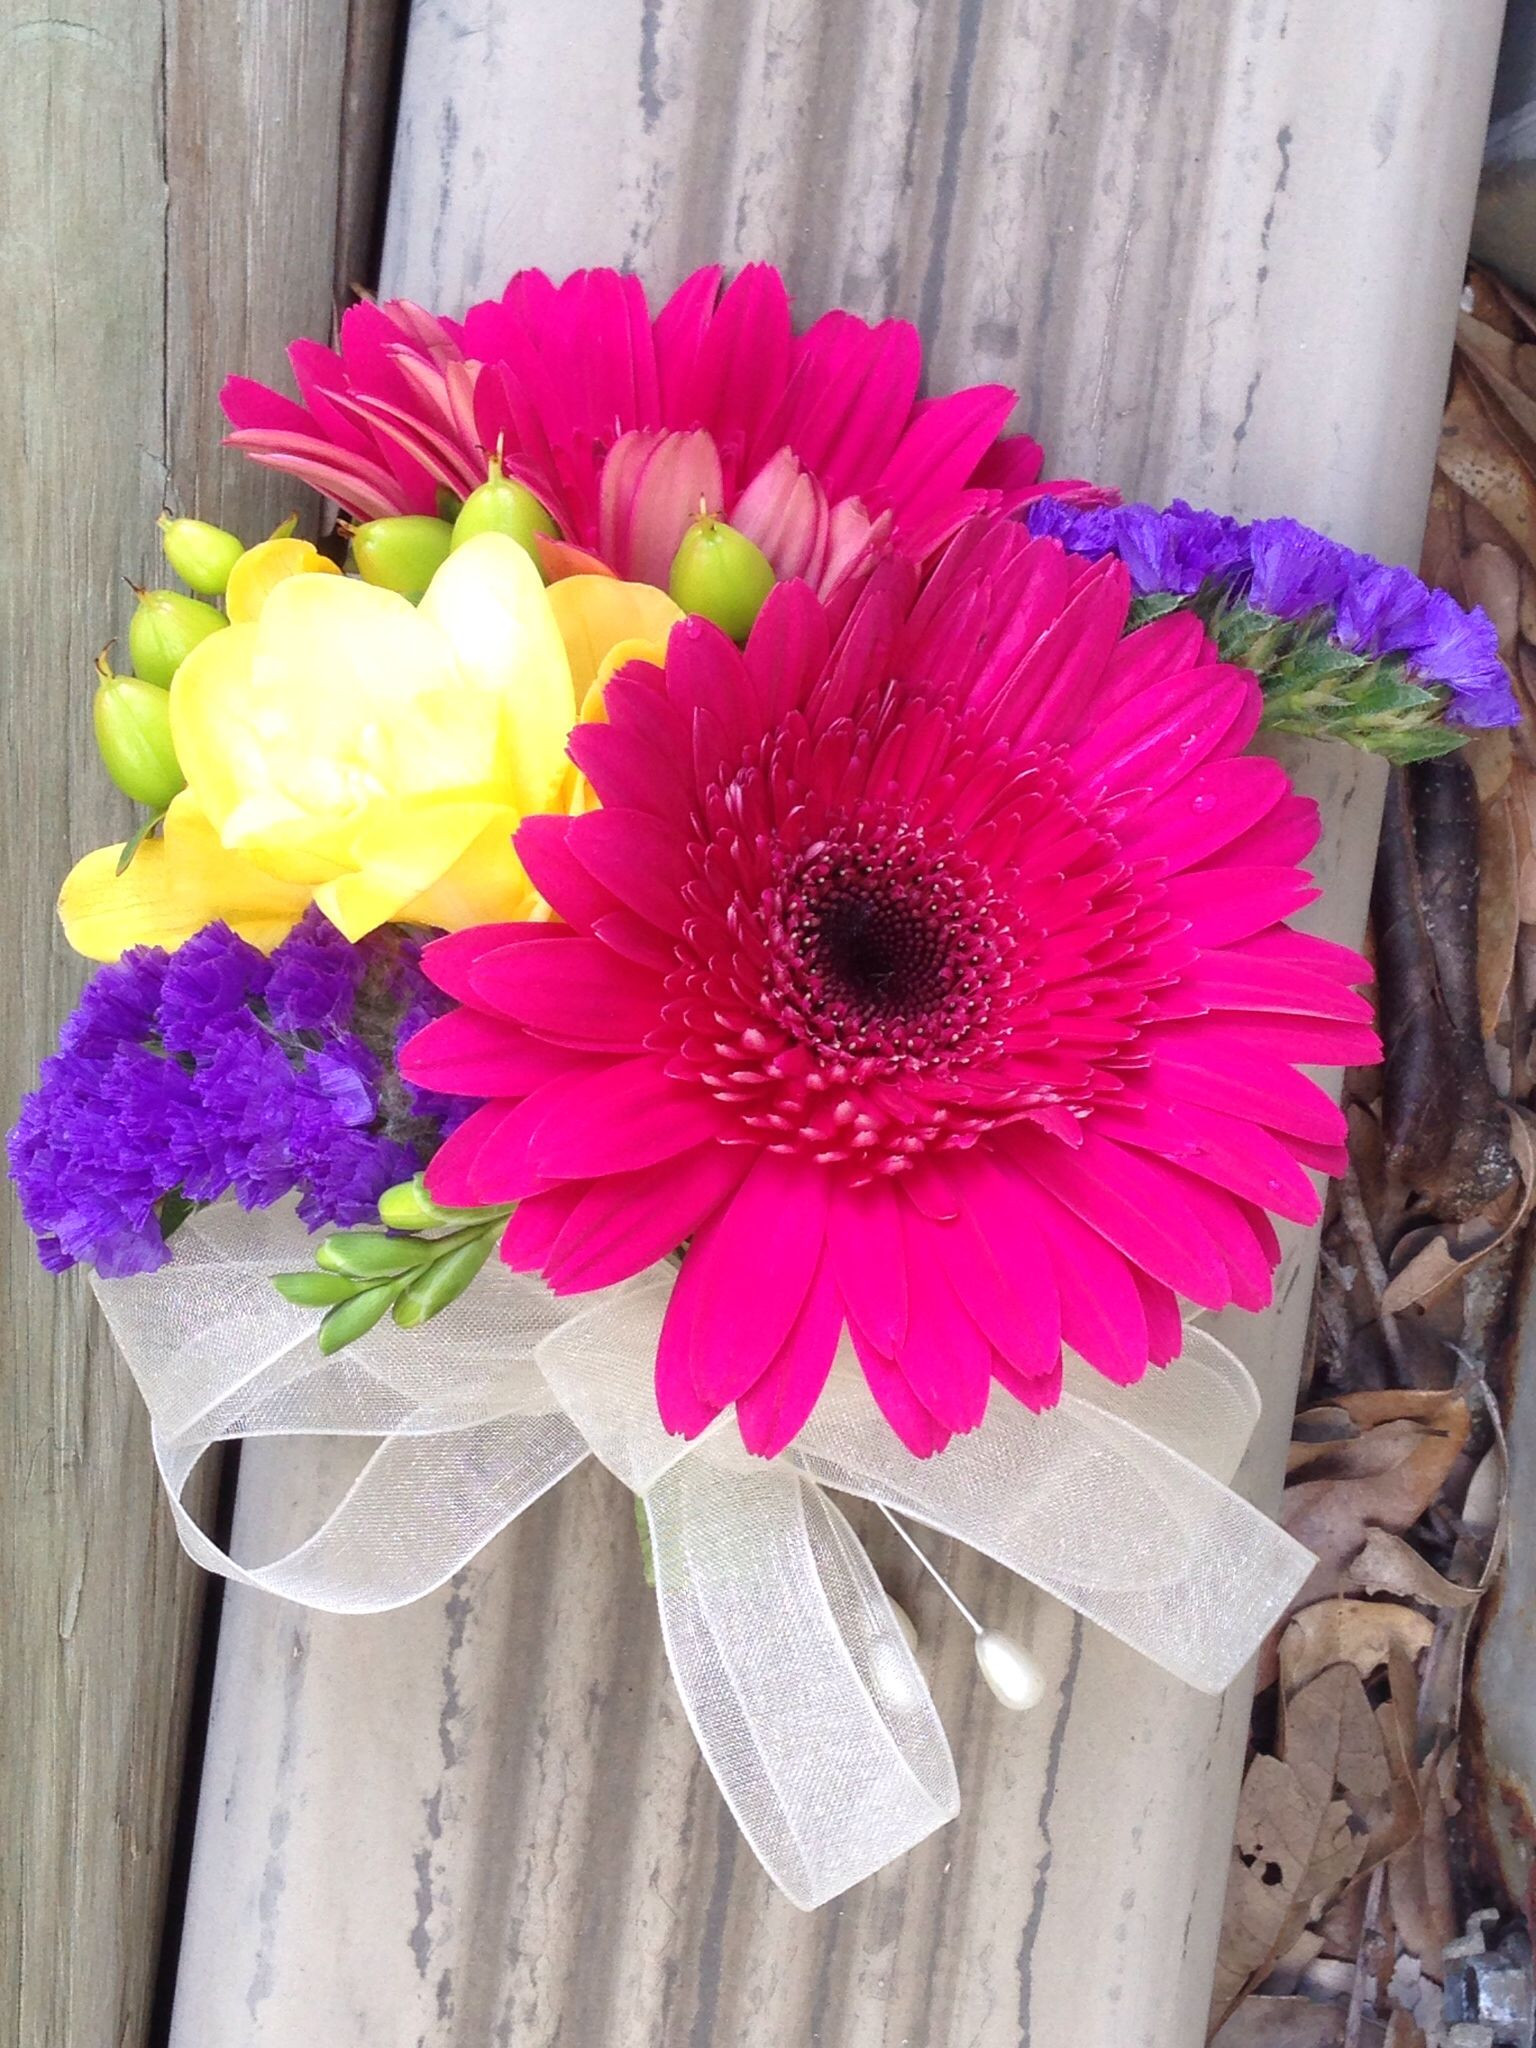 Gerbera Daisies in Hot Pink Corsage with Yellow Freesia and Purple Statice Accents